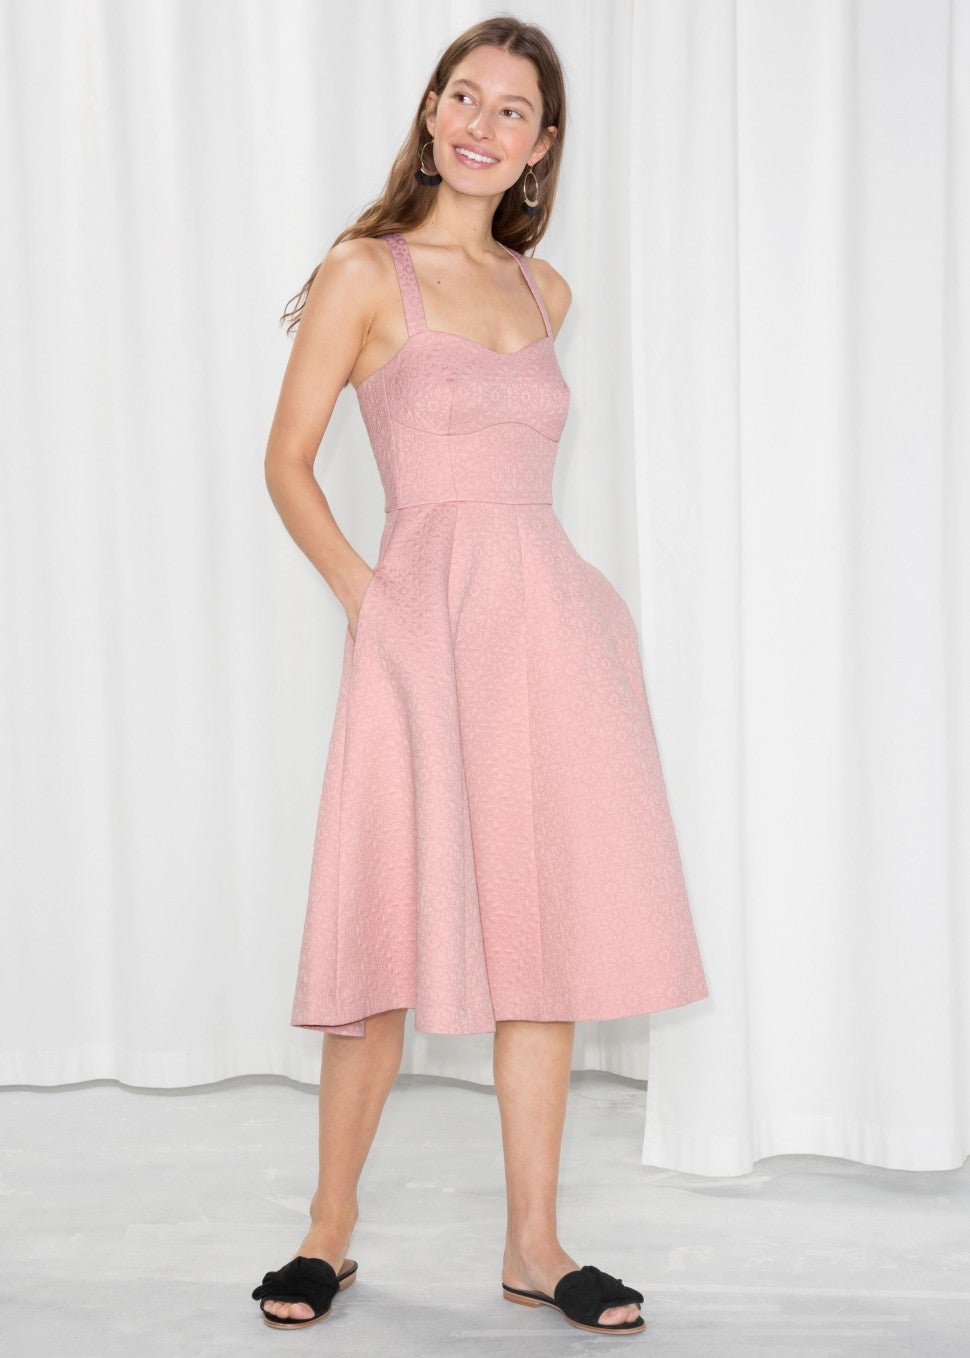 & Other Stories pink flared dress